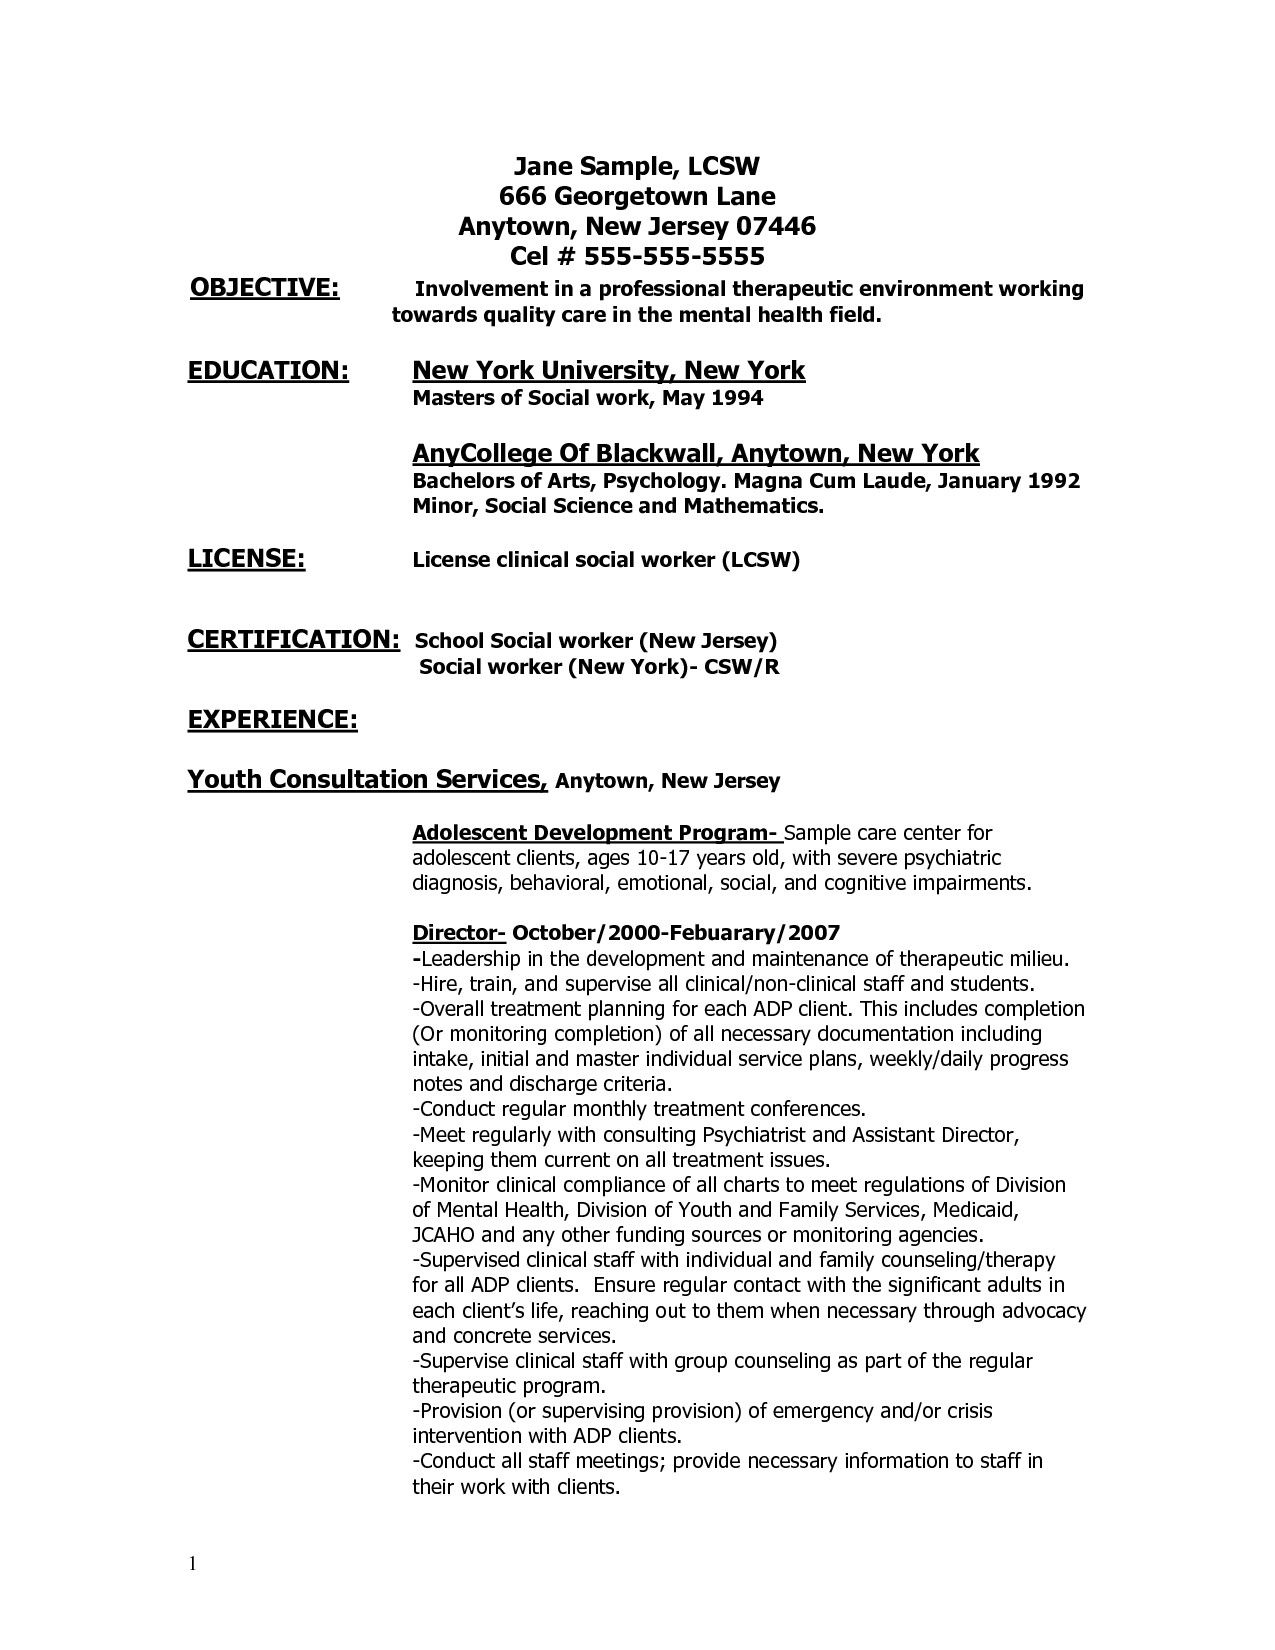 75 Inspiring Photos Of Resume Objective Examples For An Internship Check More At